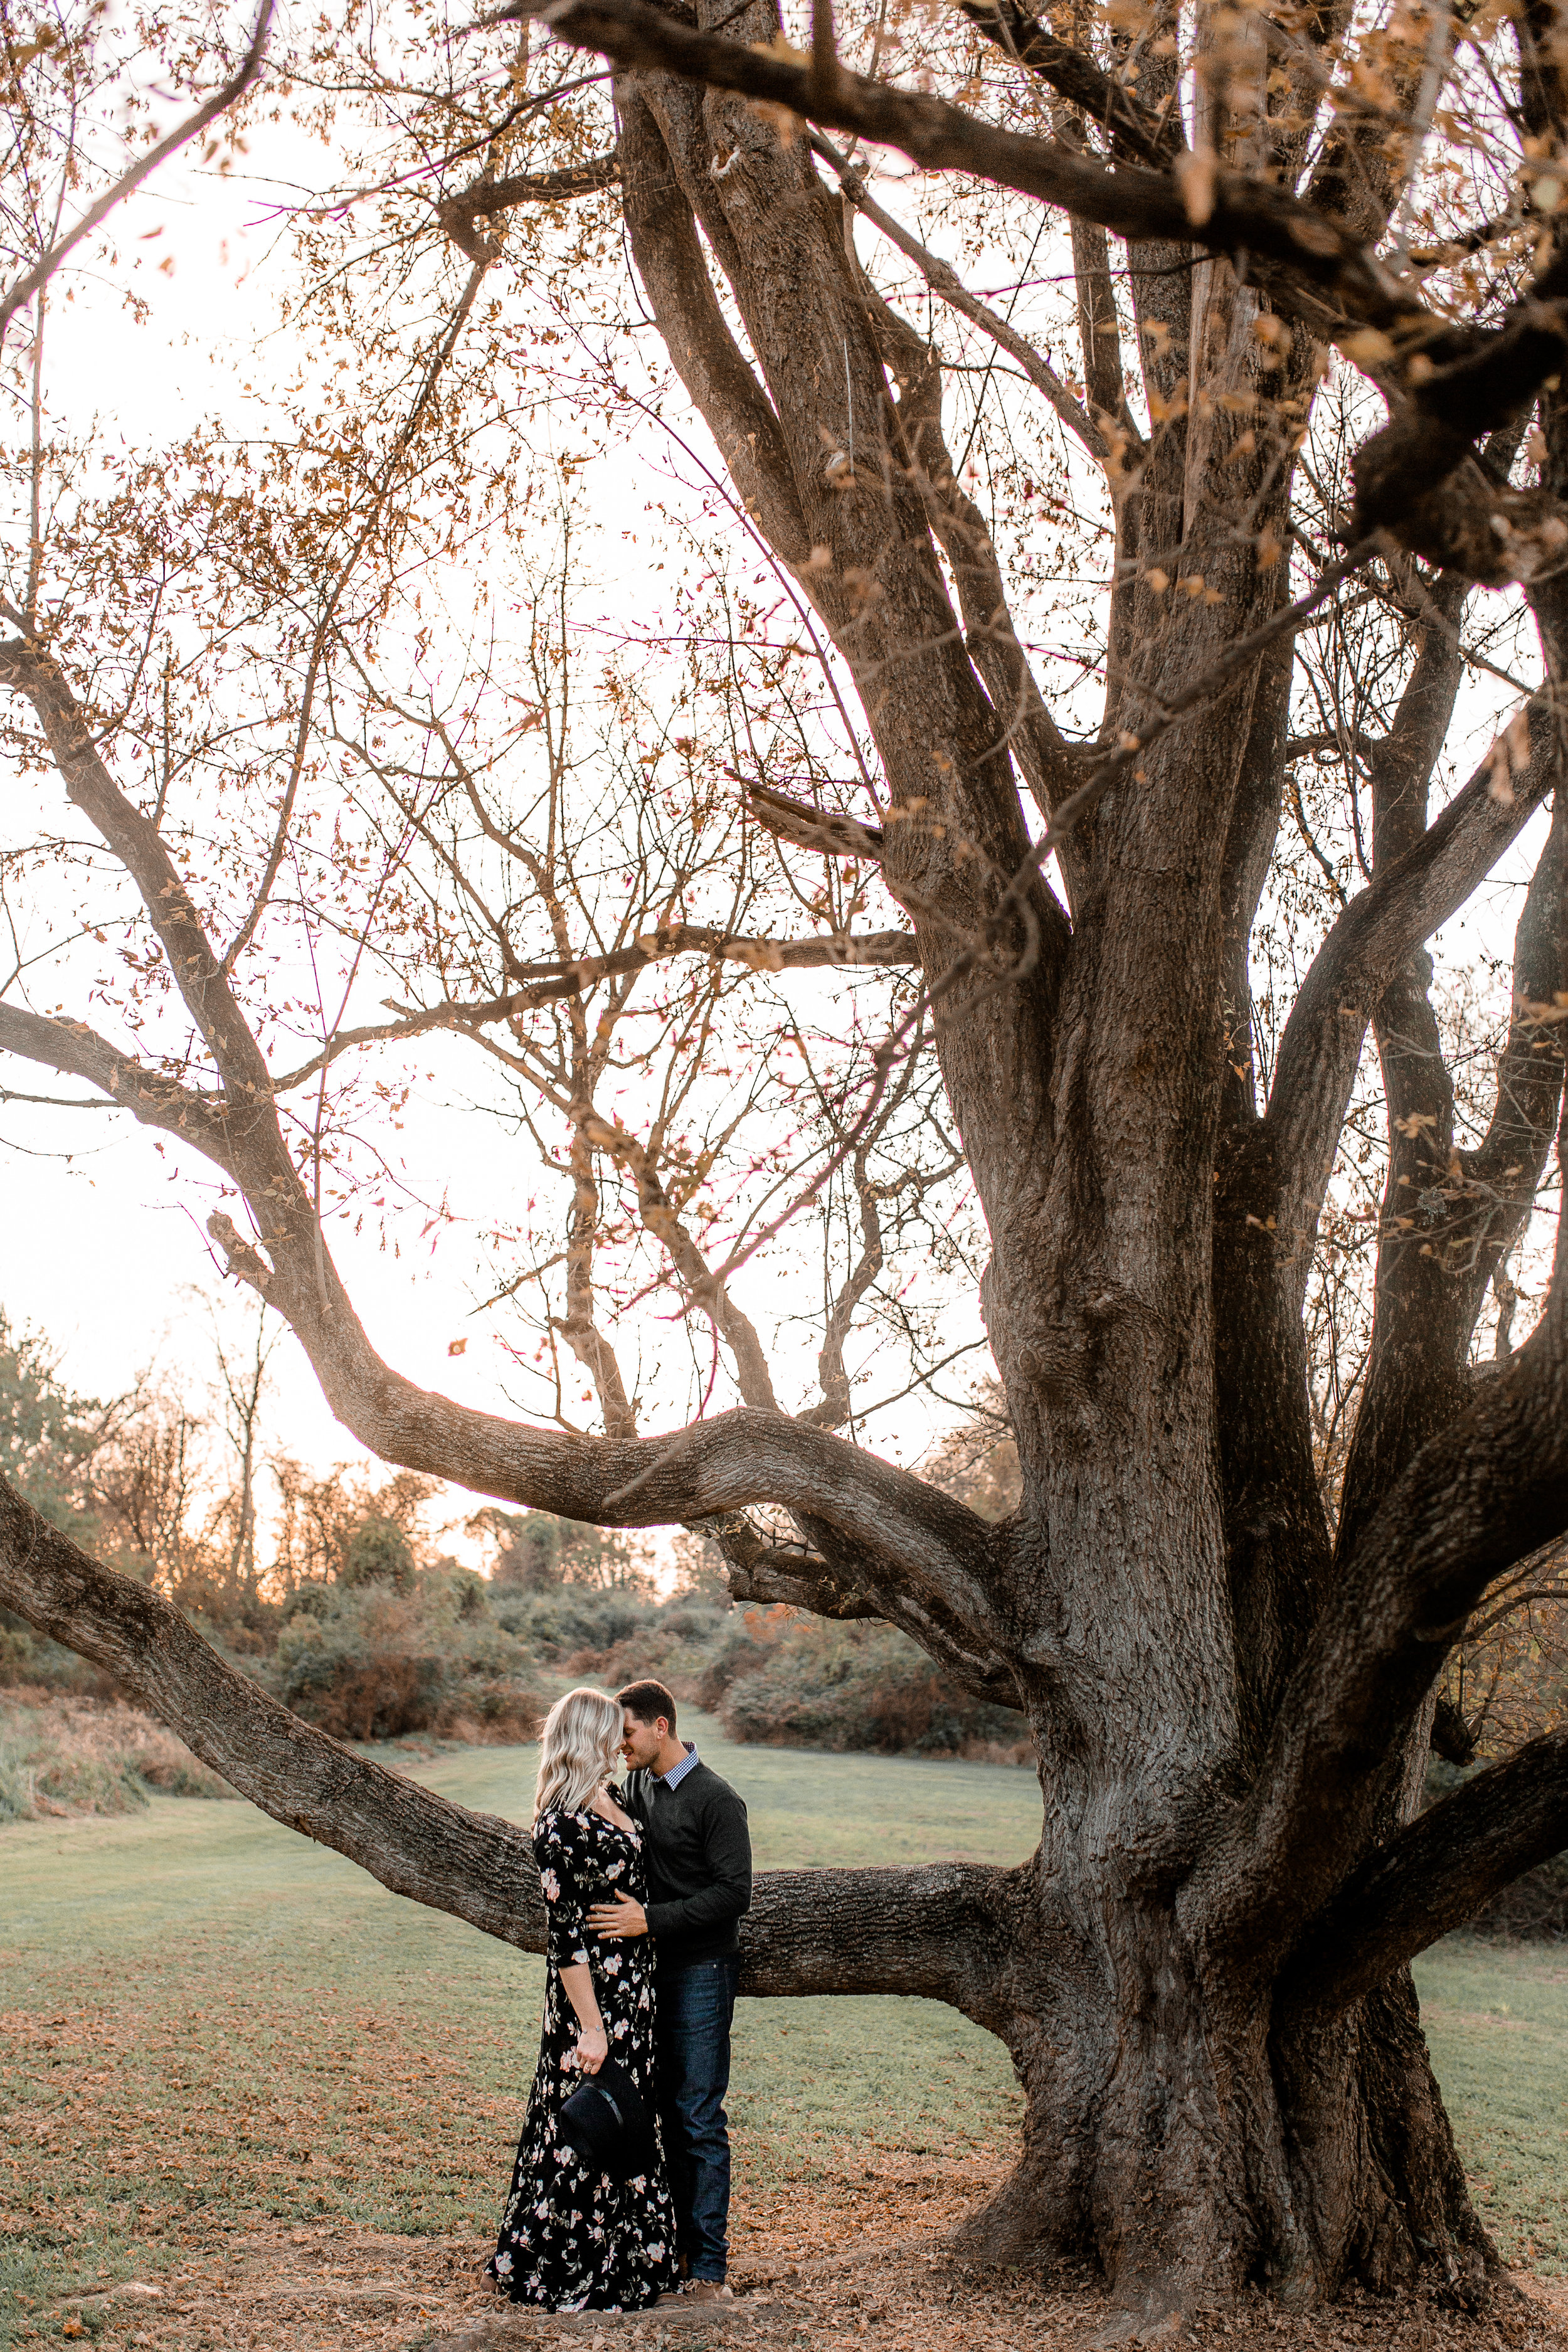 nicole-daacke-photography-carefree-bohemian-lancaster-pa-pennsylvania-engagement-photos-engagement-session-golden-sunset-adventure-session-in-lancaster-pa-lancaster-pa-outdoor-wedding-photographer-26.jpg